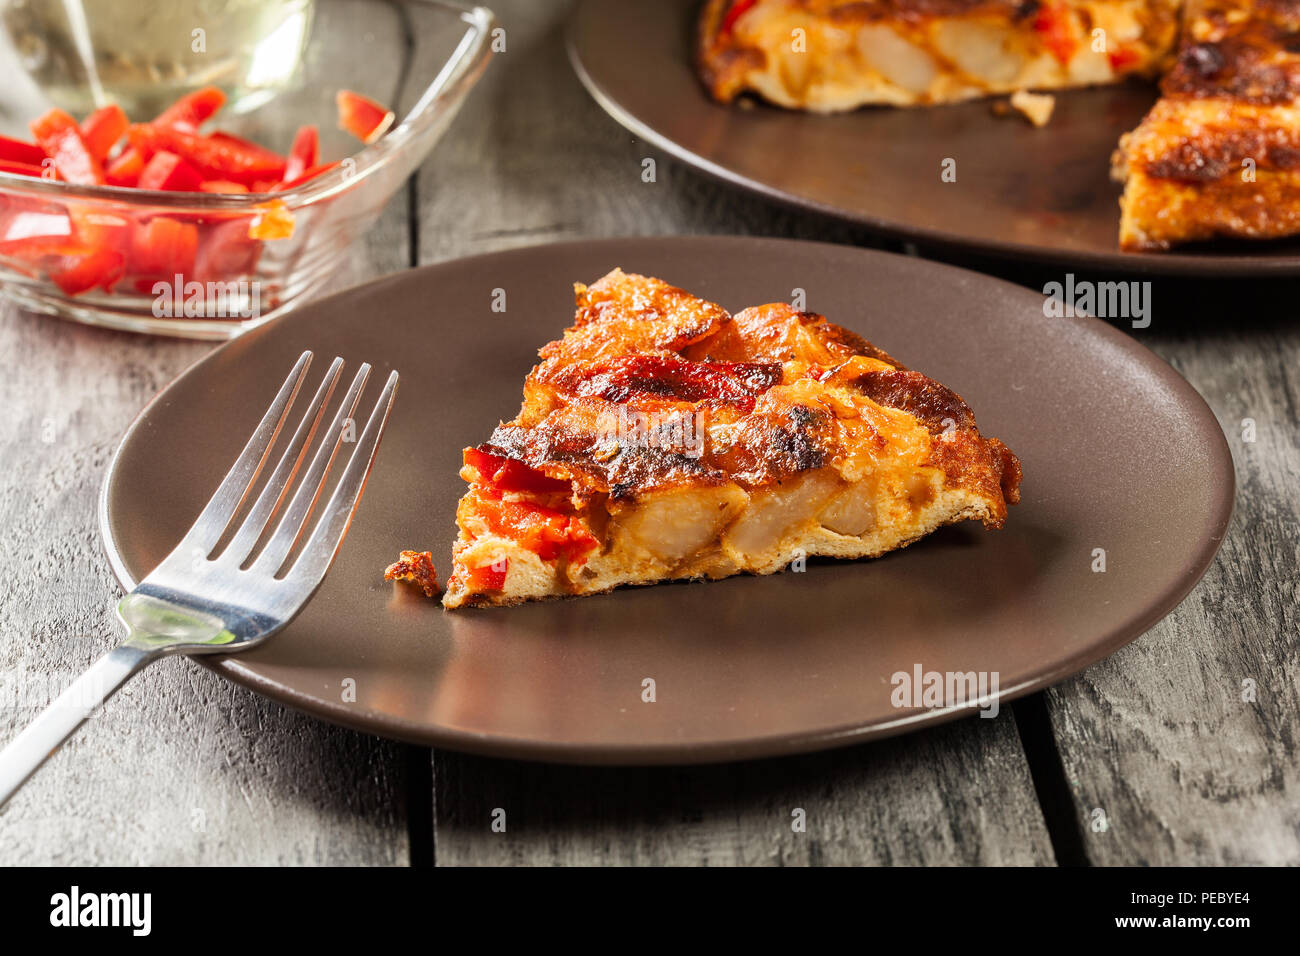 Tortilla de patatas. Spanish omelette with sausage chorizo, potatoes, paprika and egg, accompanied by olive oil. Spanish cuisine Stock Photo